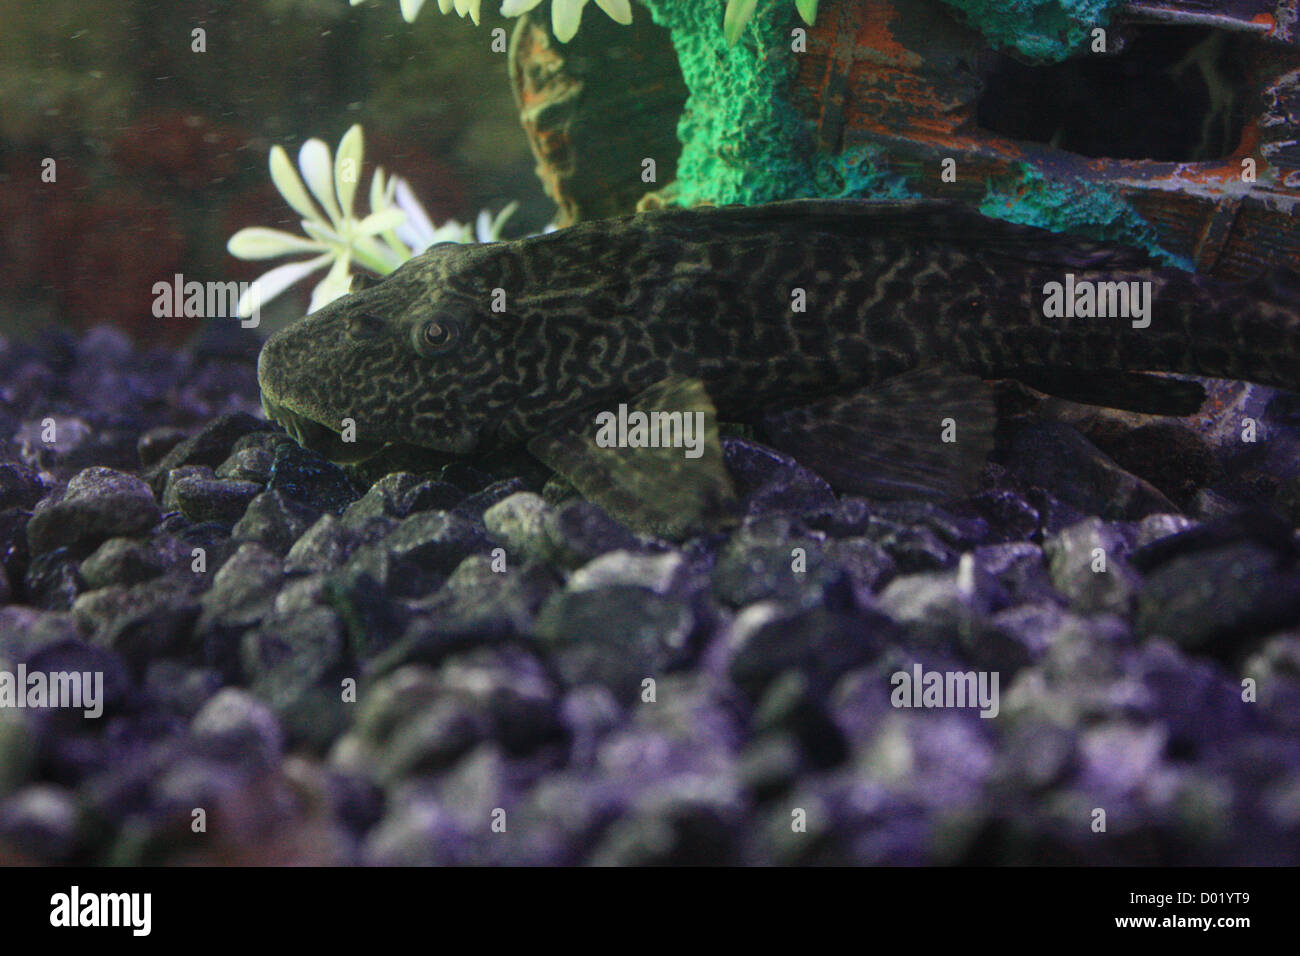 Freshwater aquarium fish photos - Freshwater Fish Aquarium Fish Tropical Fish Pictures Of Fish Fish Tanks Fish For Sale All About Fish Salt Water Fish Che